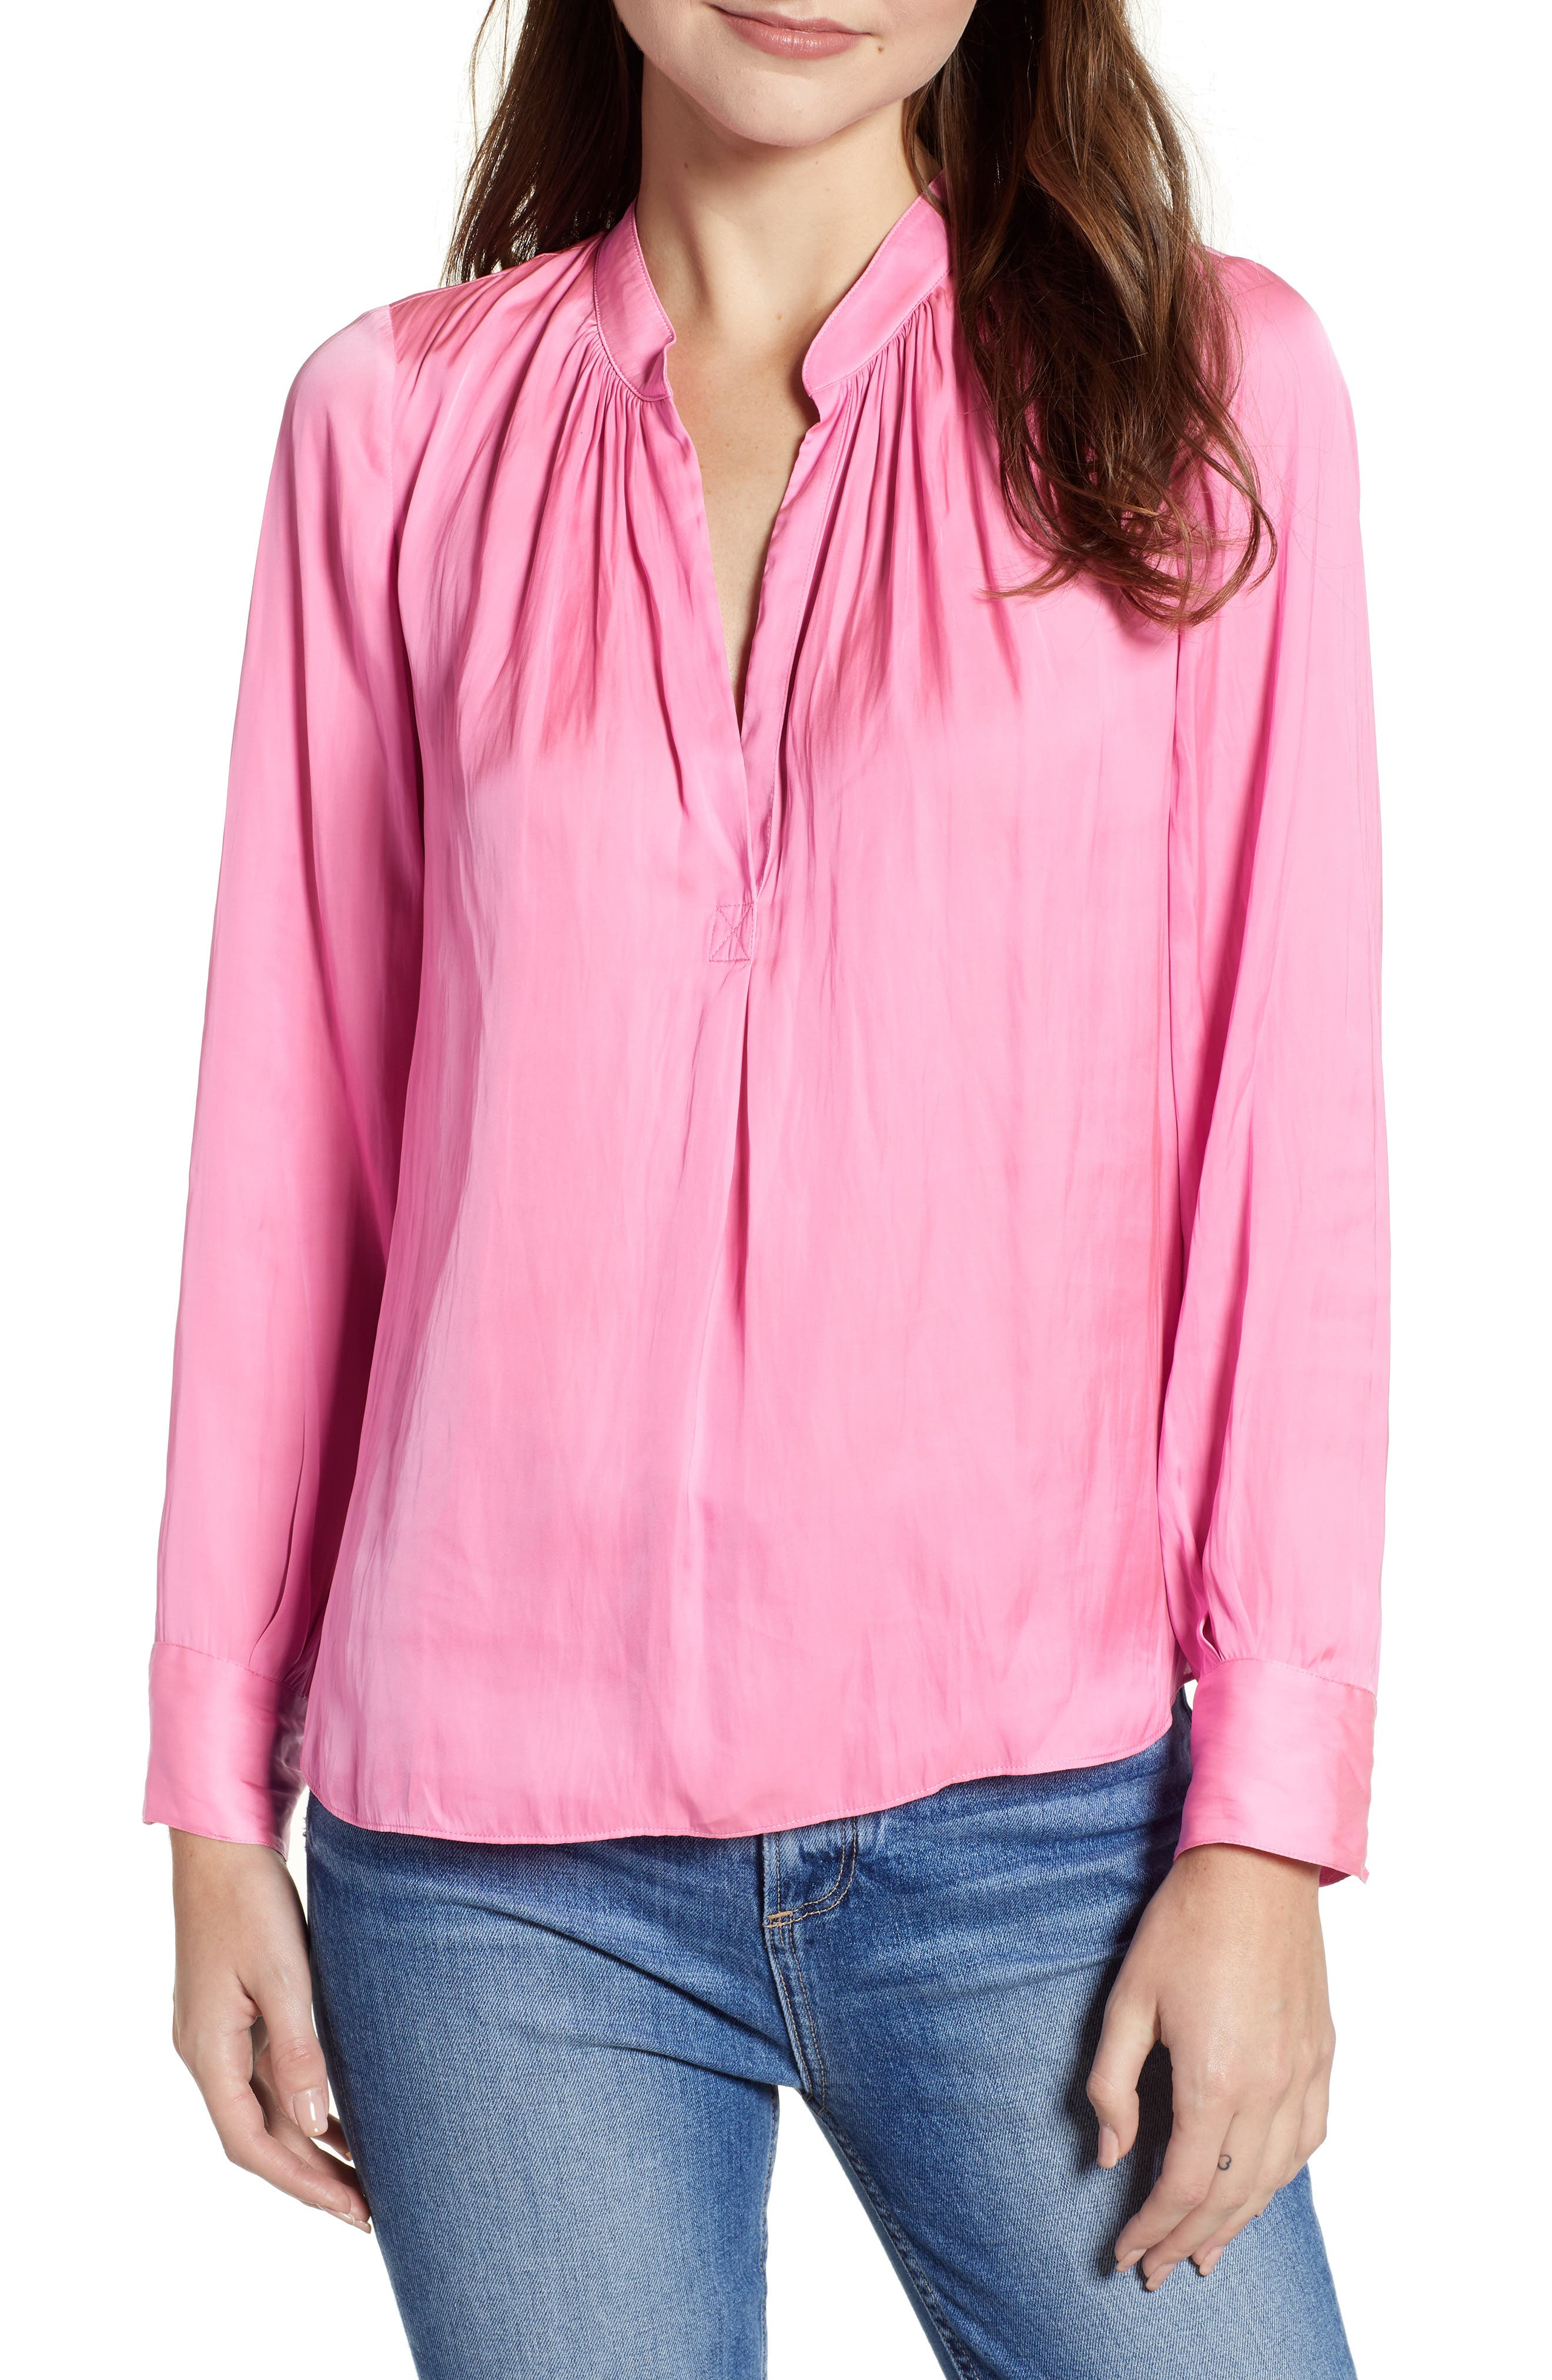 Zadig & Volaire Tink Blouse,                             Main thumbnail 1, color,                             688